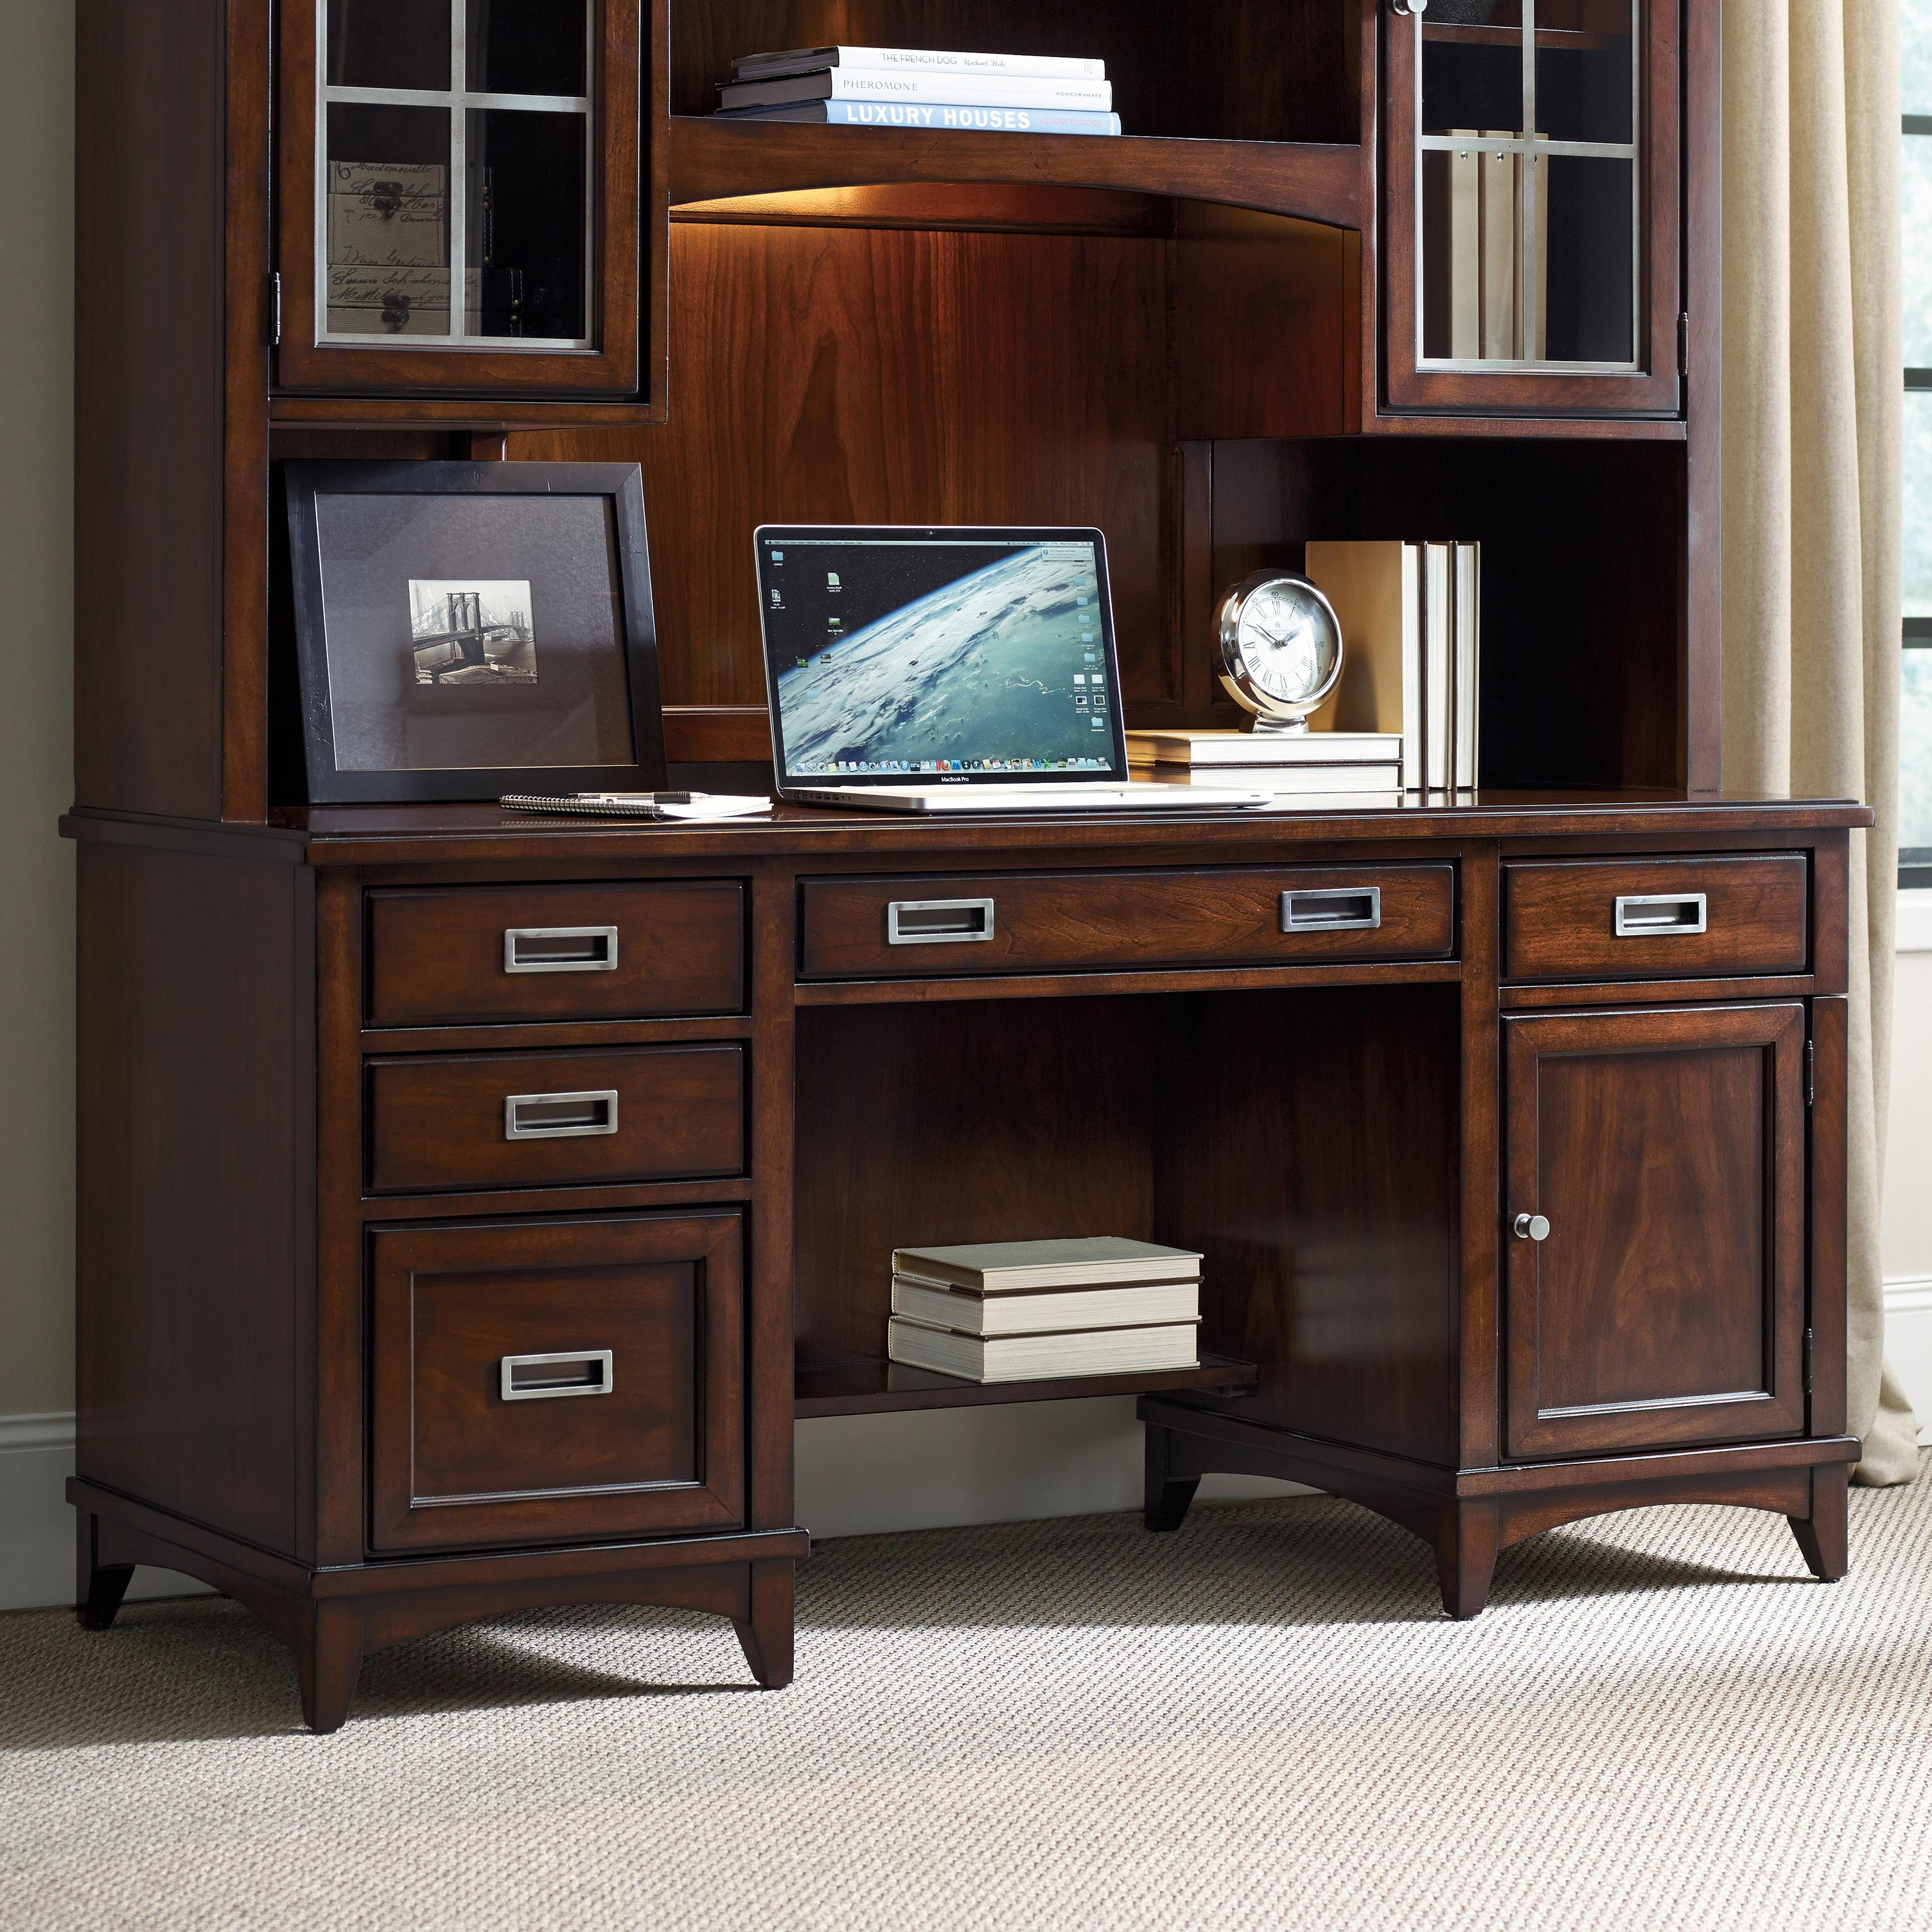 Hooker Furniture Latitude Computer Credenza - Item Number: 10464